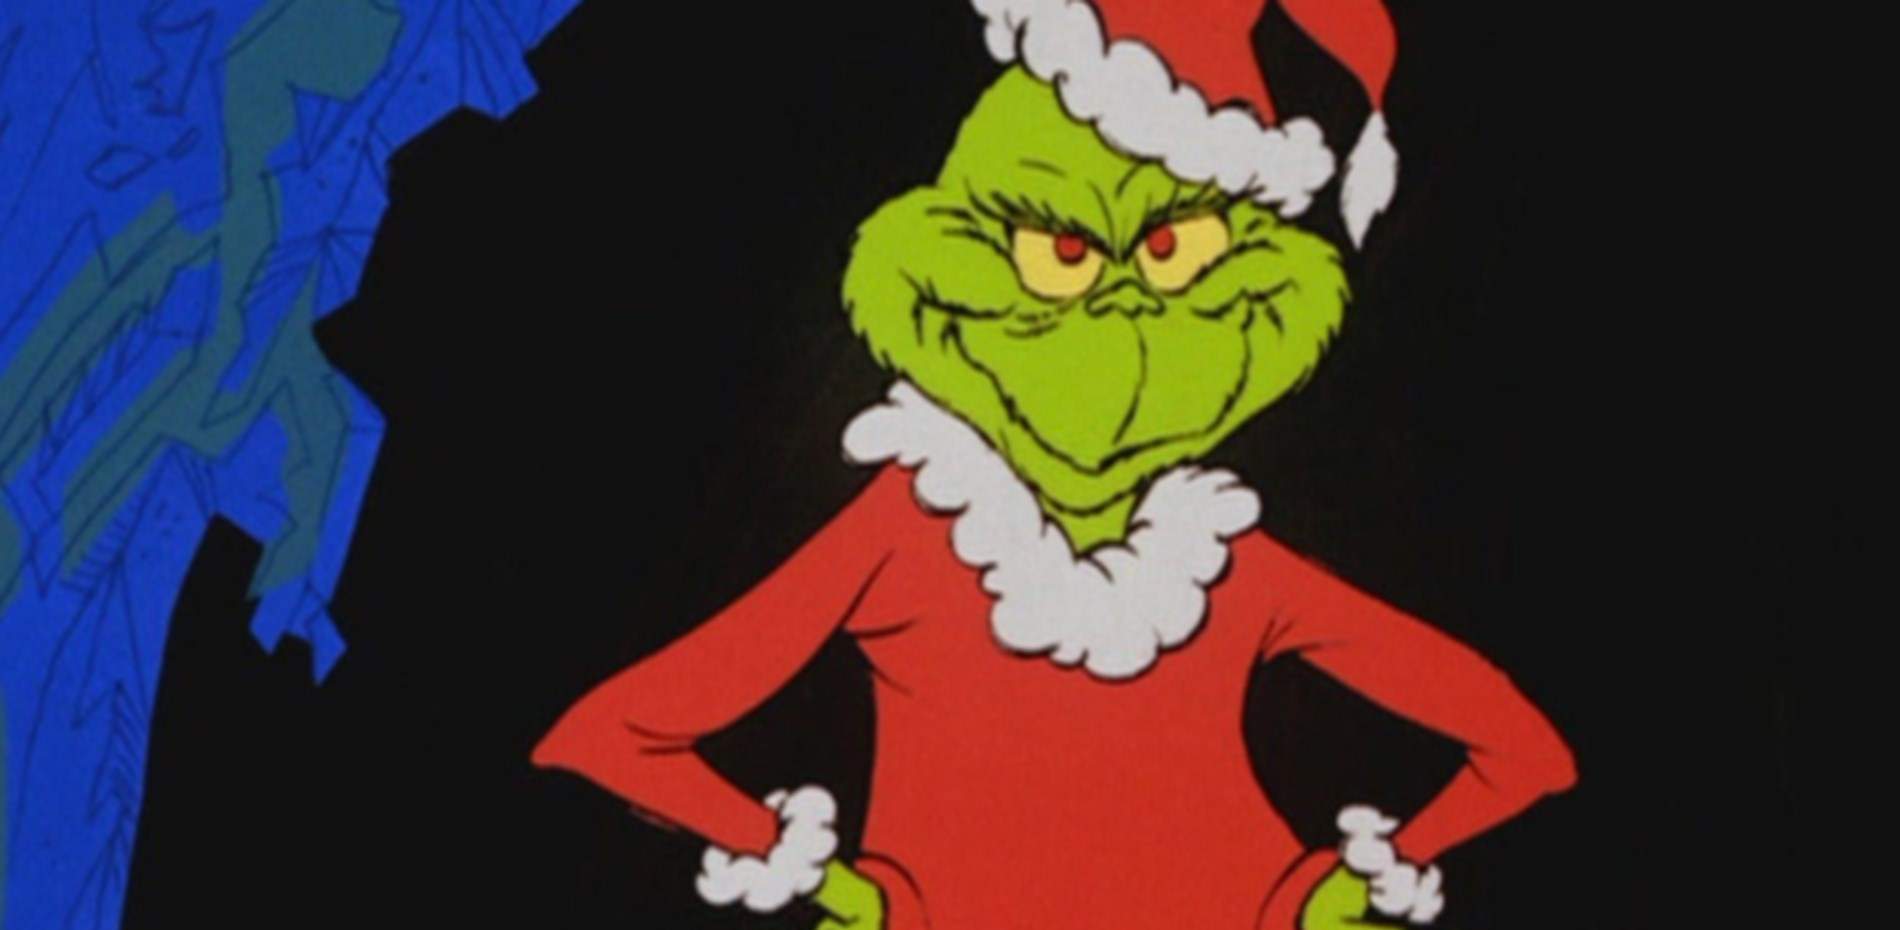 Media release: Minister is the Grinch that stole Christmas Main Image